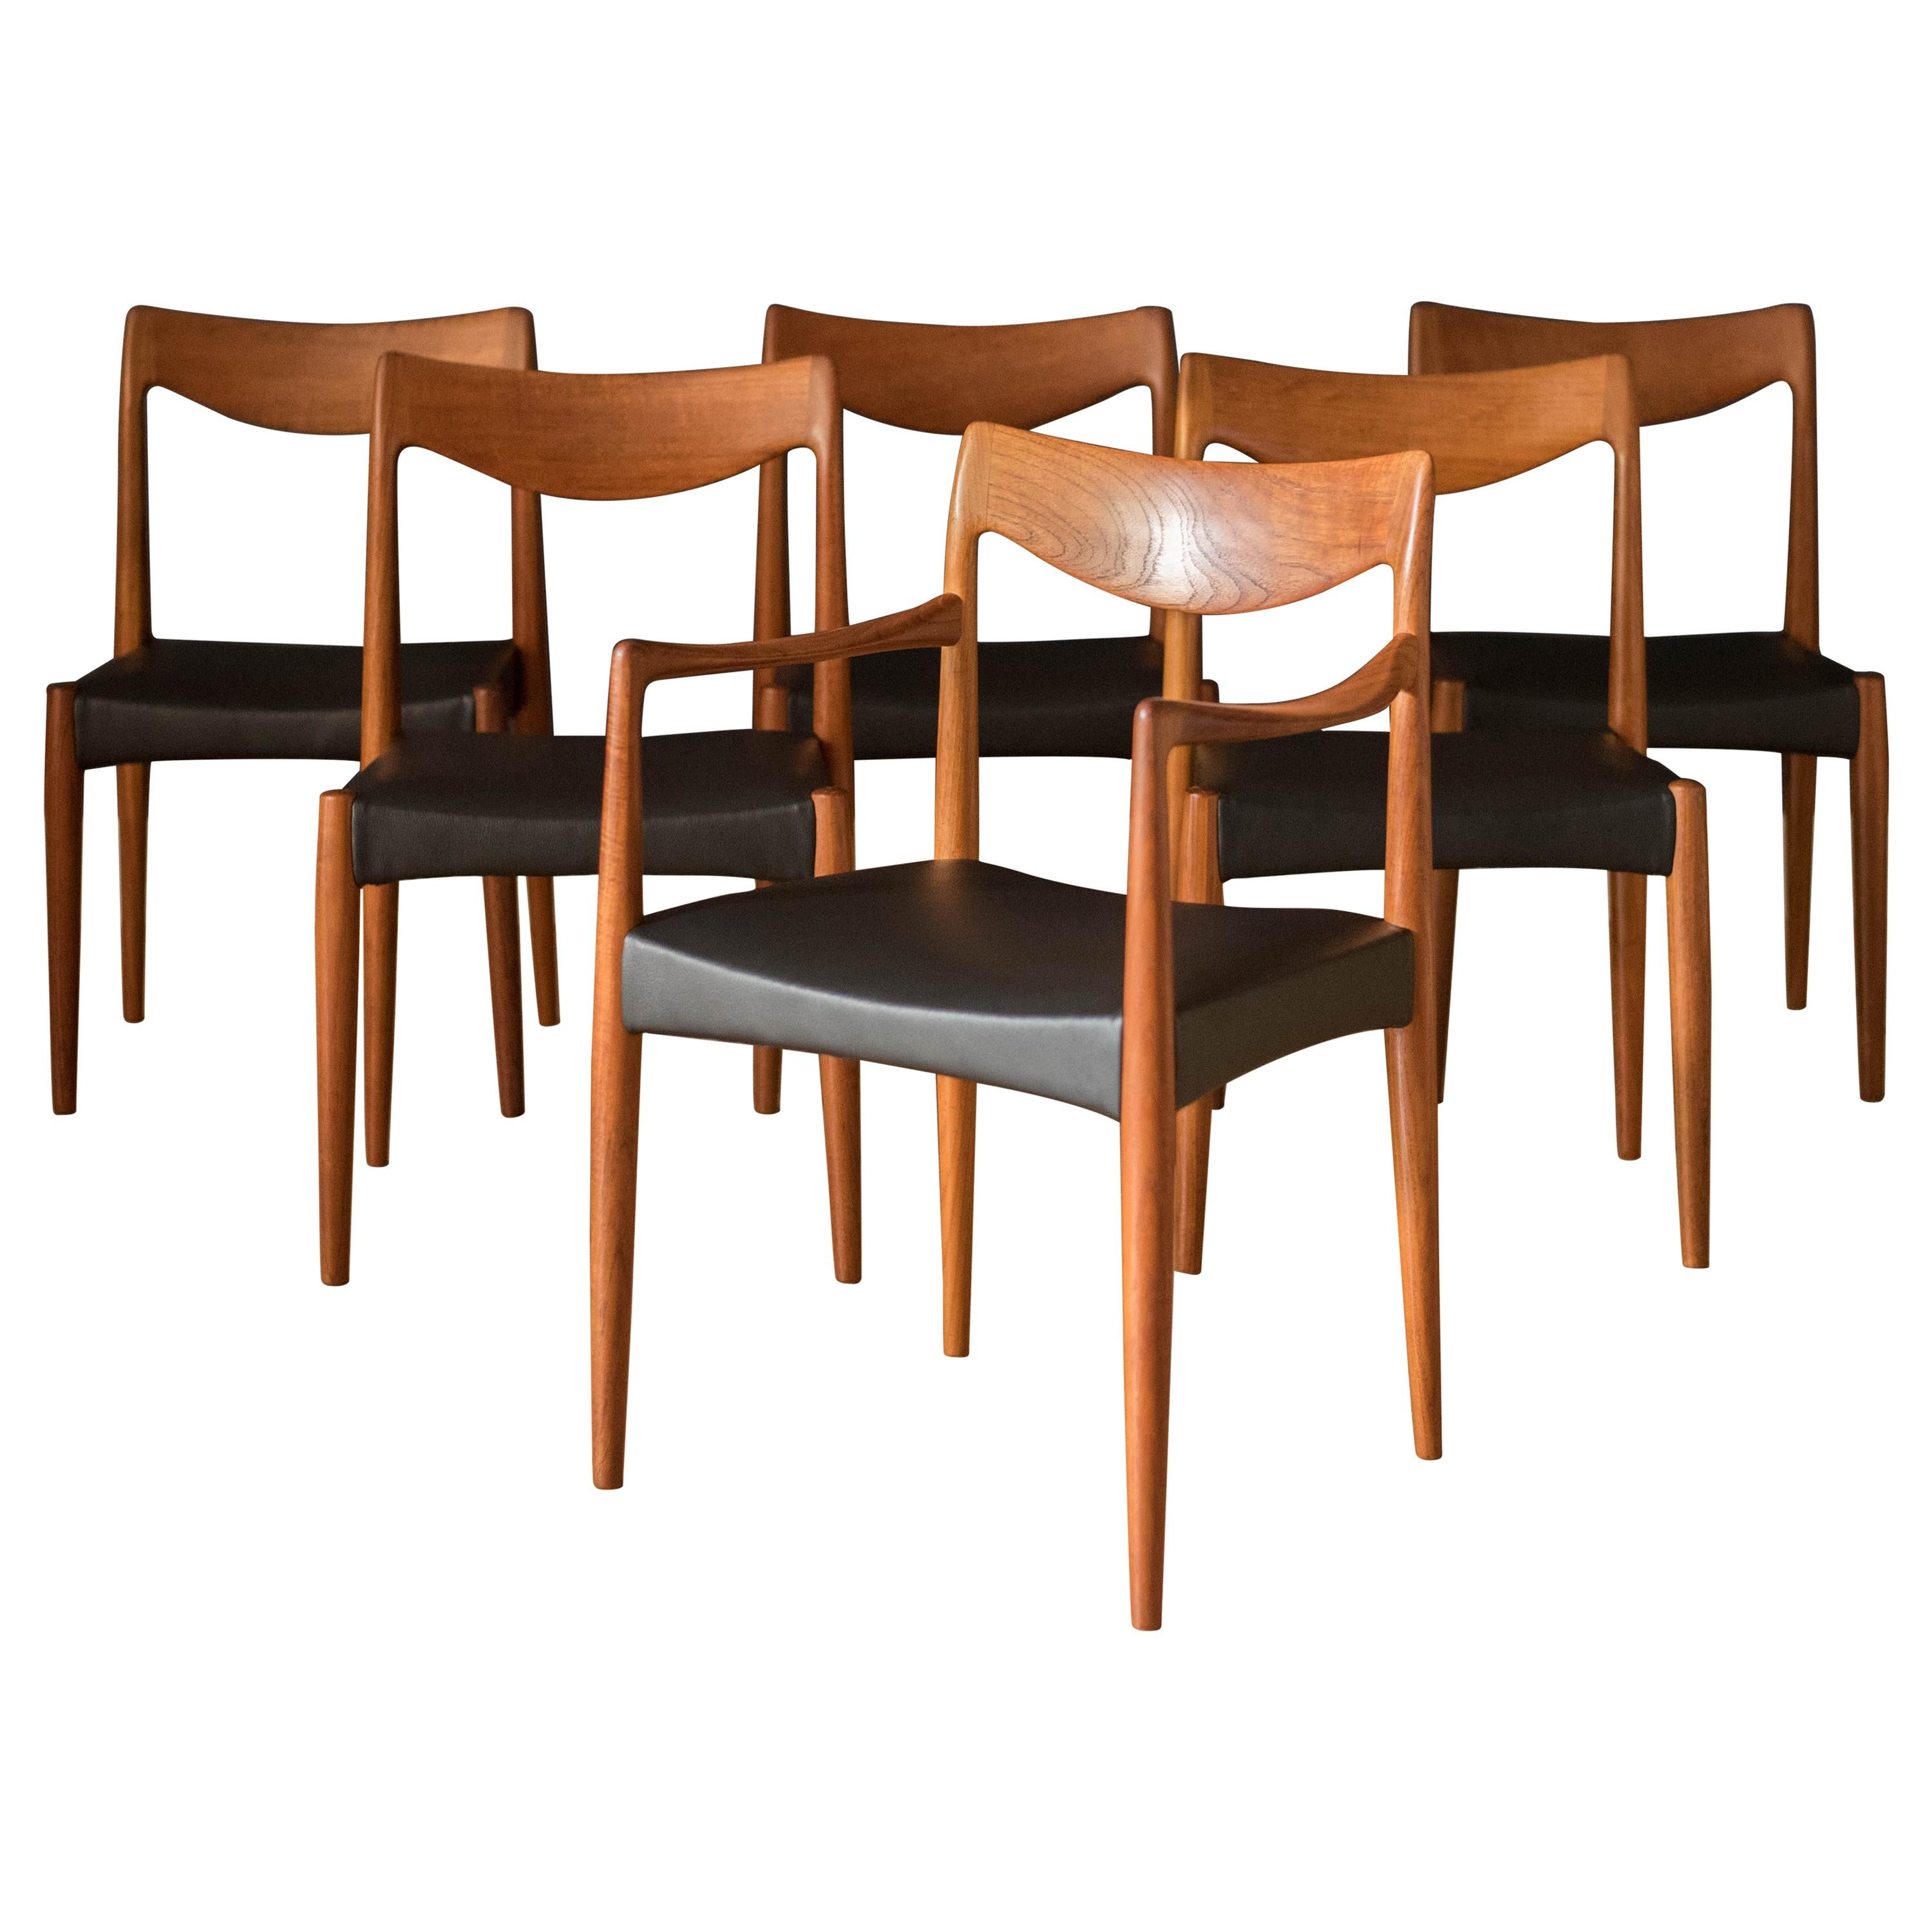 Vintage Set of Six Teak Dining Chairs by Rastad & Relling for Gustav Bahus